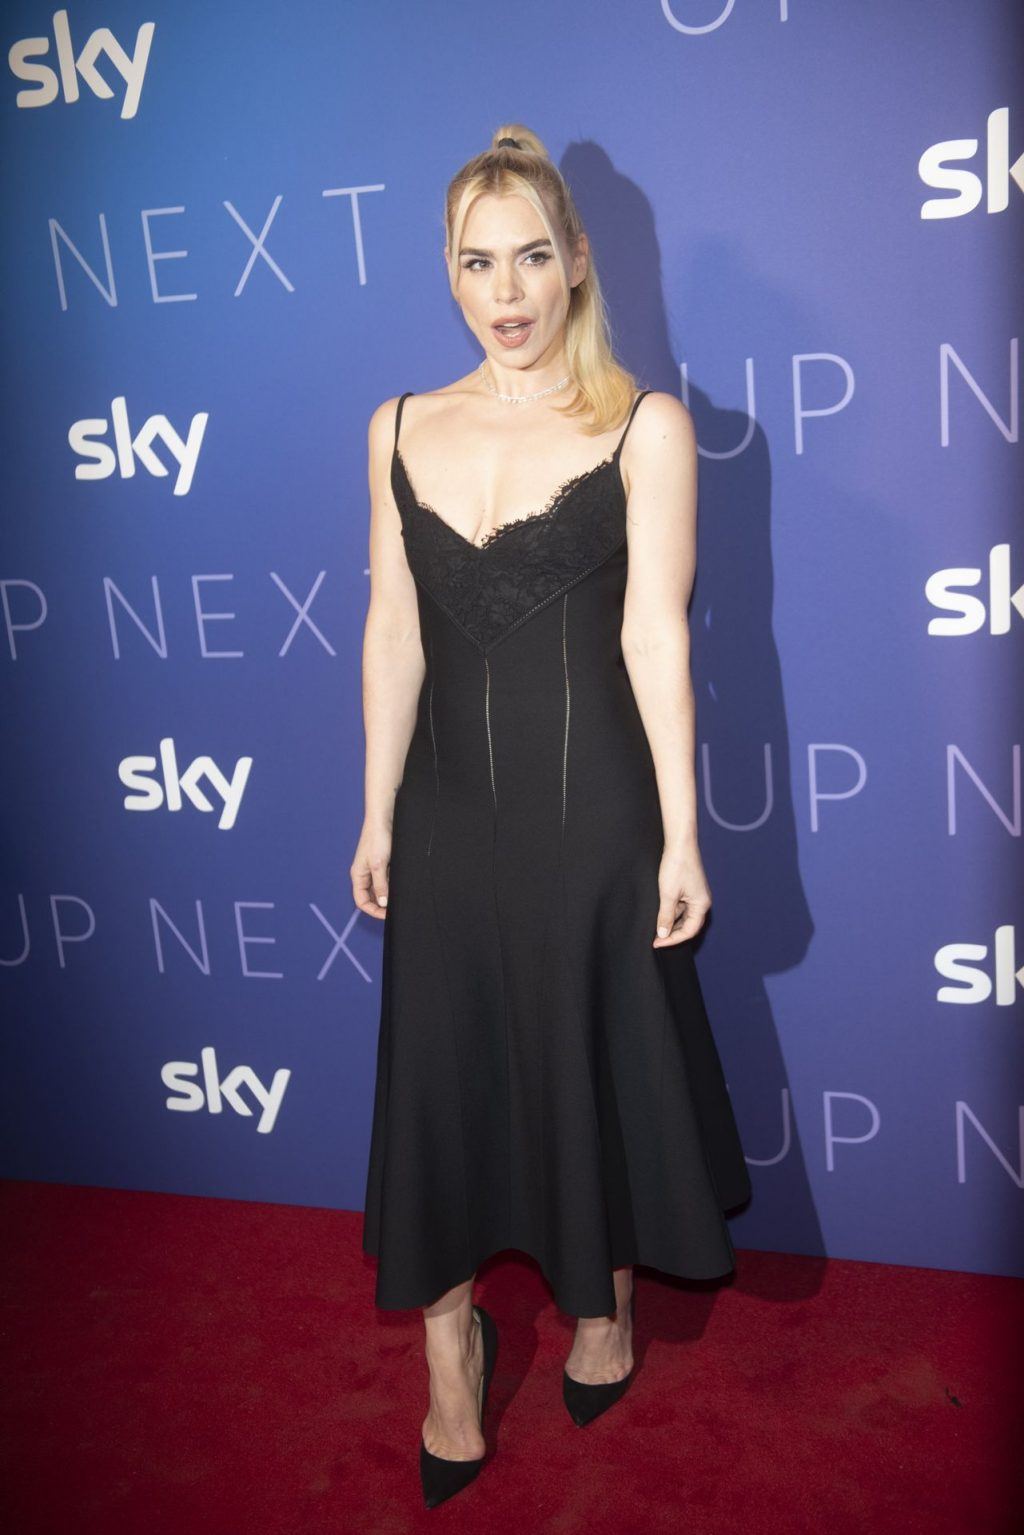 Billie Piper Sexy The Fappening Blog 47 1024x1535 - Billie Piper Smiles at the Sky Up Next Event (67 Photos)